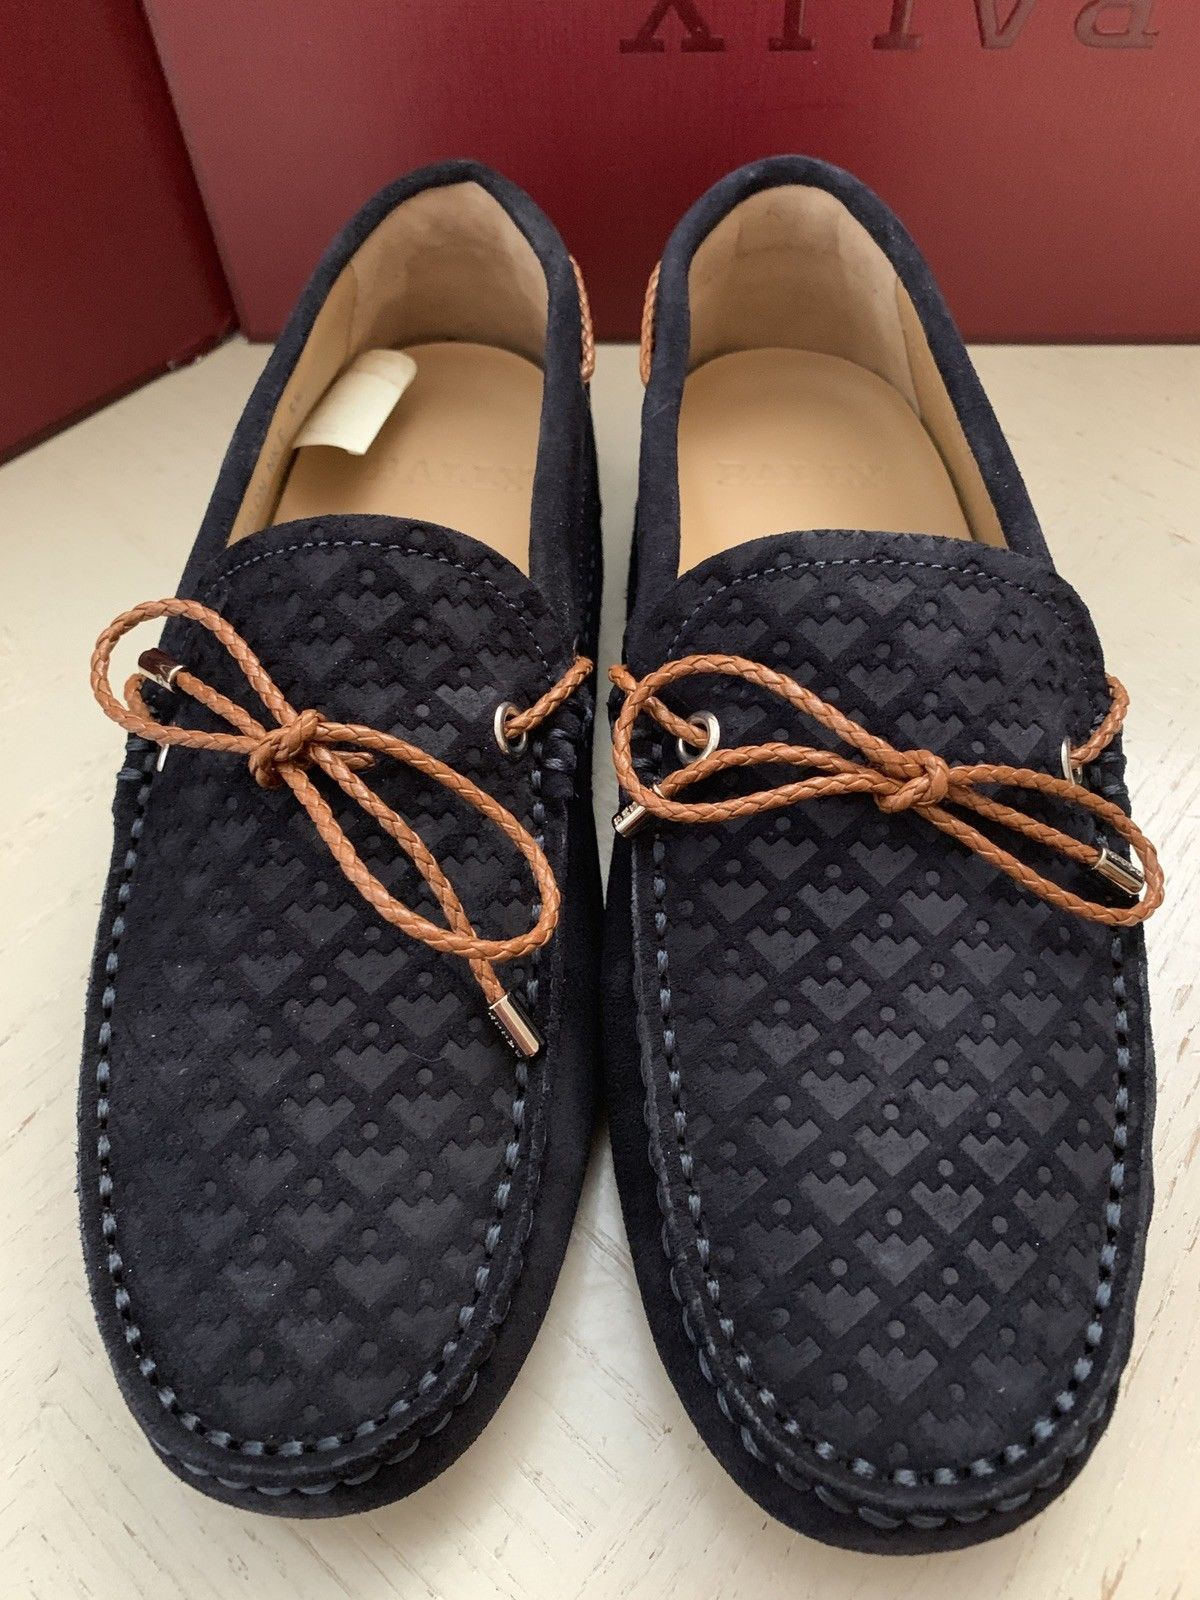 New $495 Bally Men Weilon Suide Driver Loafers Shoes Blue Navy 6.5 US Italy